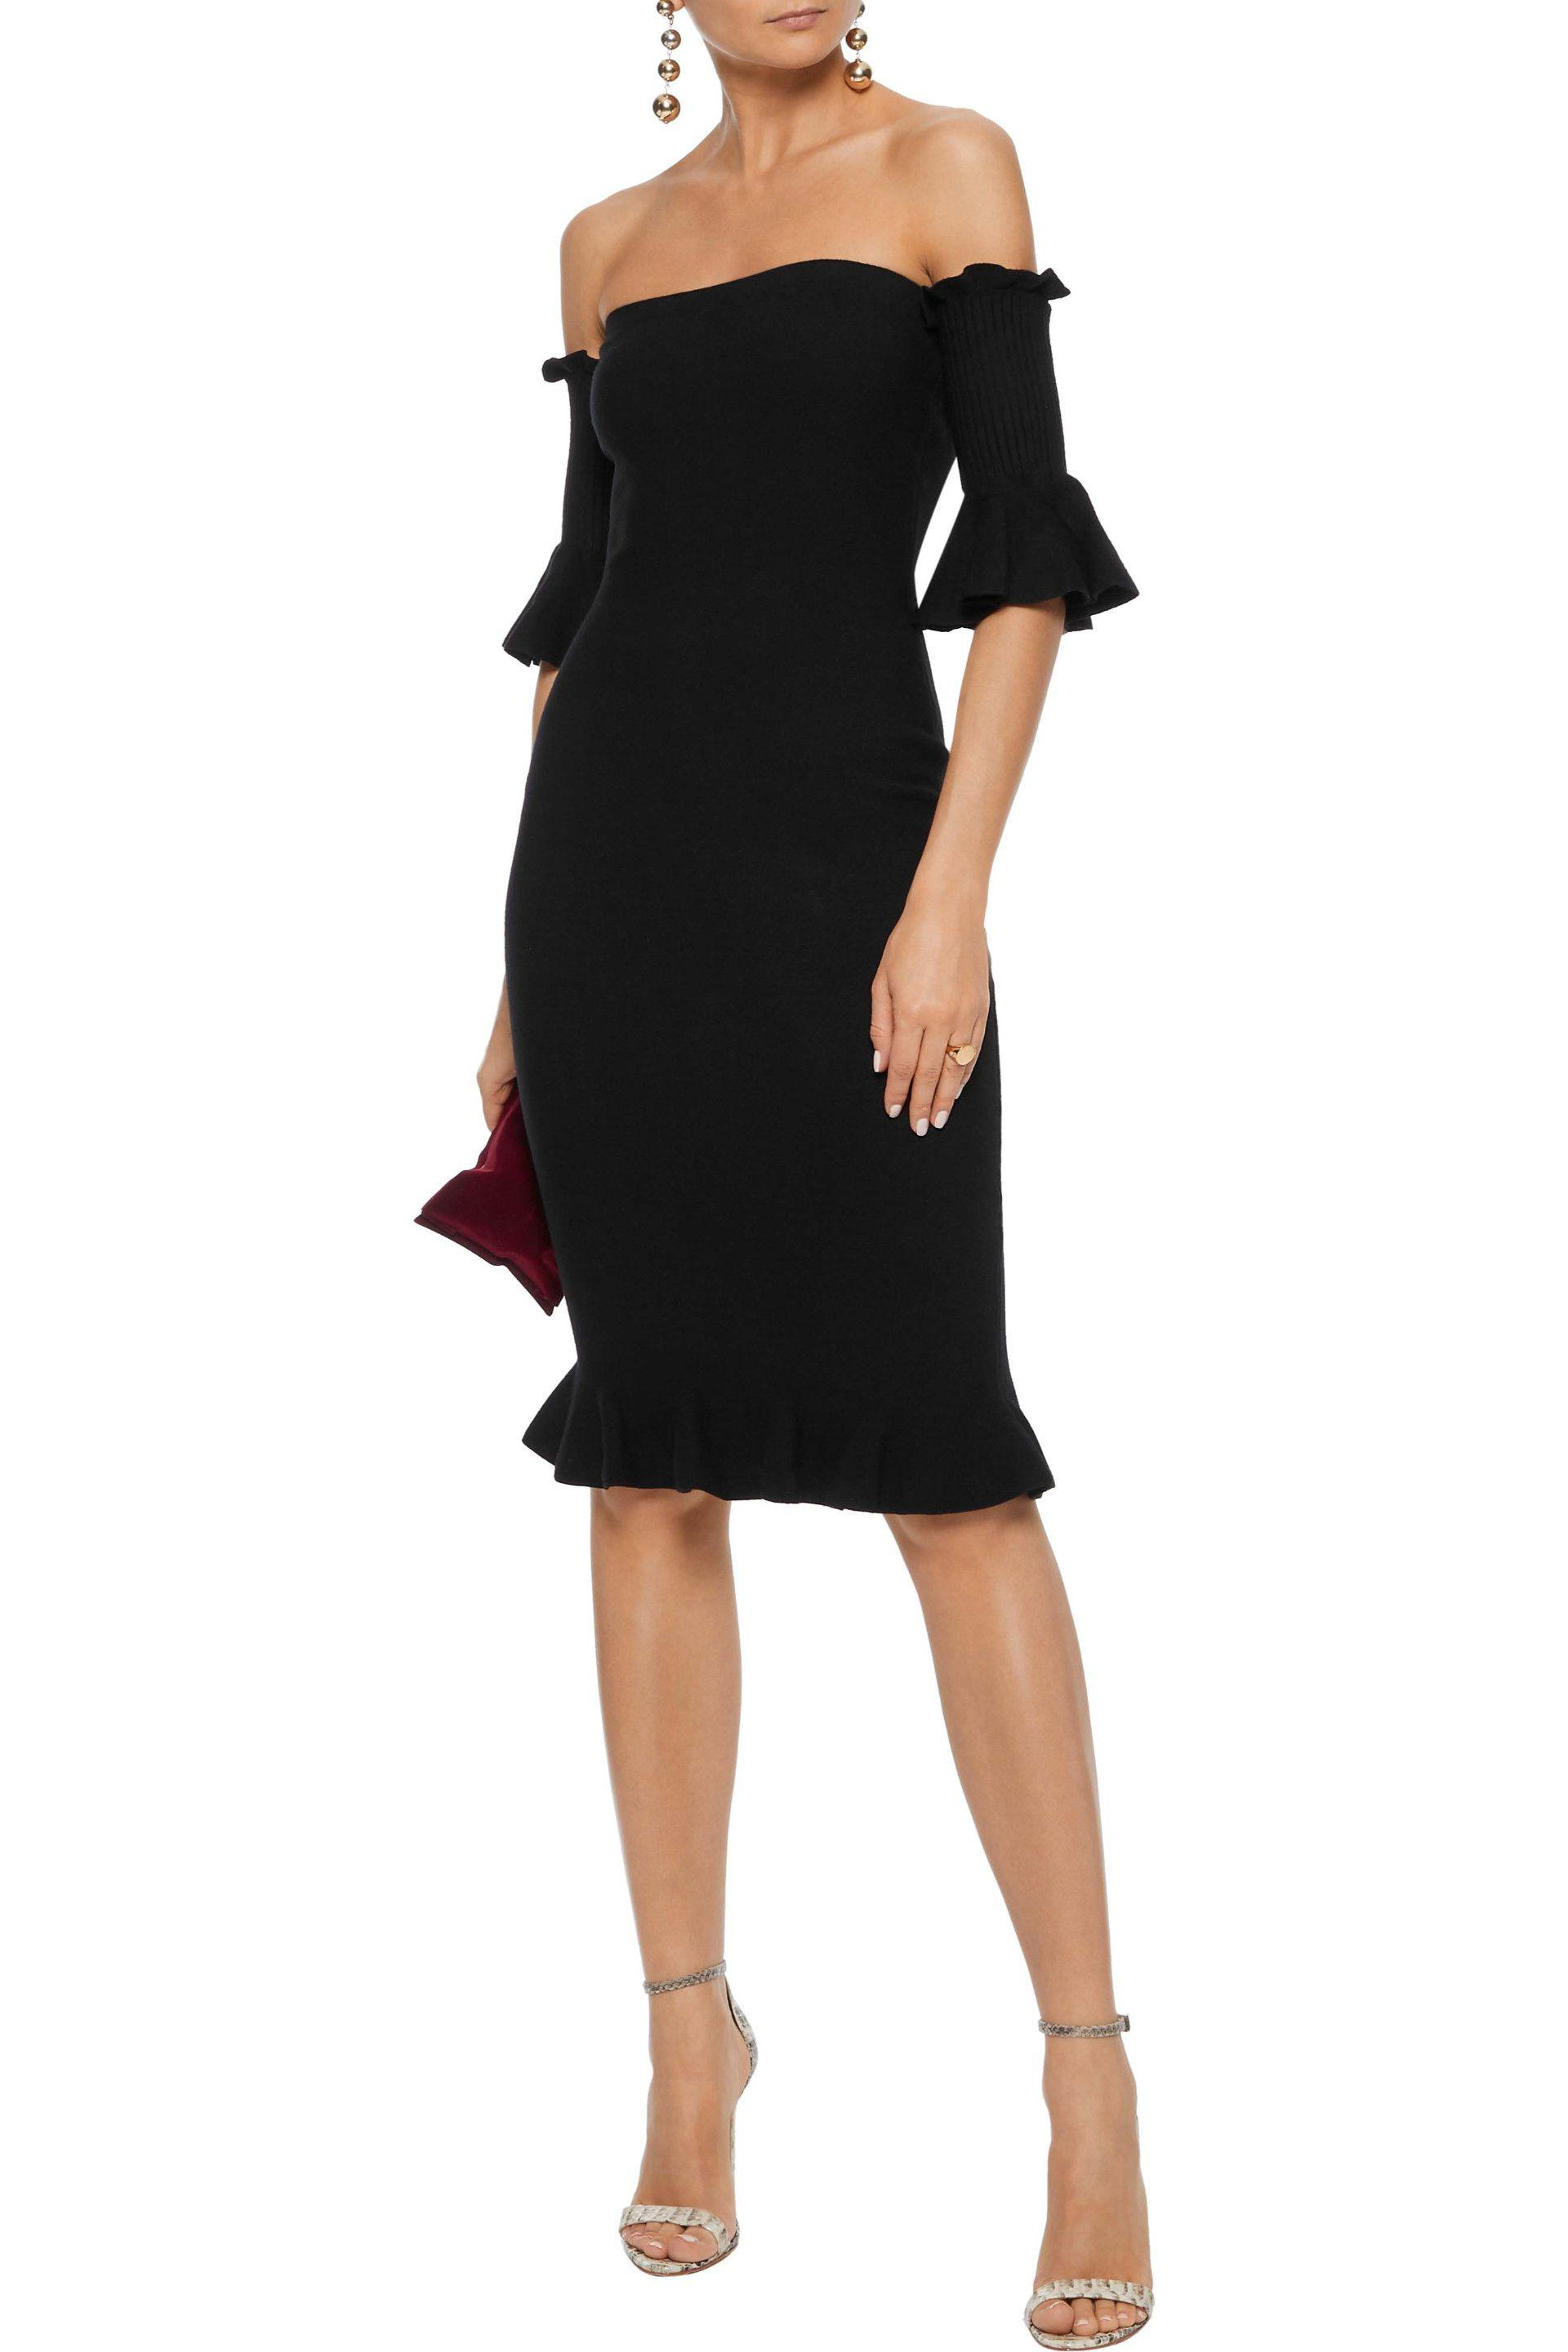 6e58995438aa MILLY - Black Off-the-shoulder Ruffle-trimmed Stretch-knit Dress -. View  fullscreen